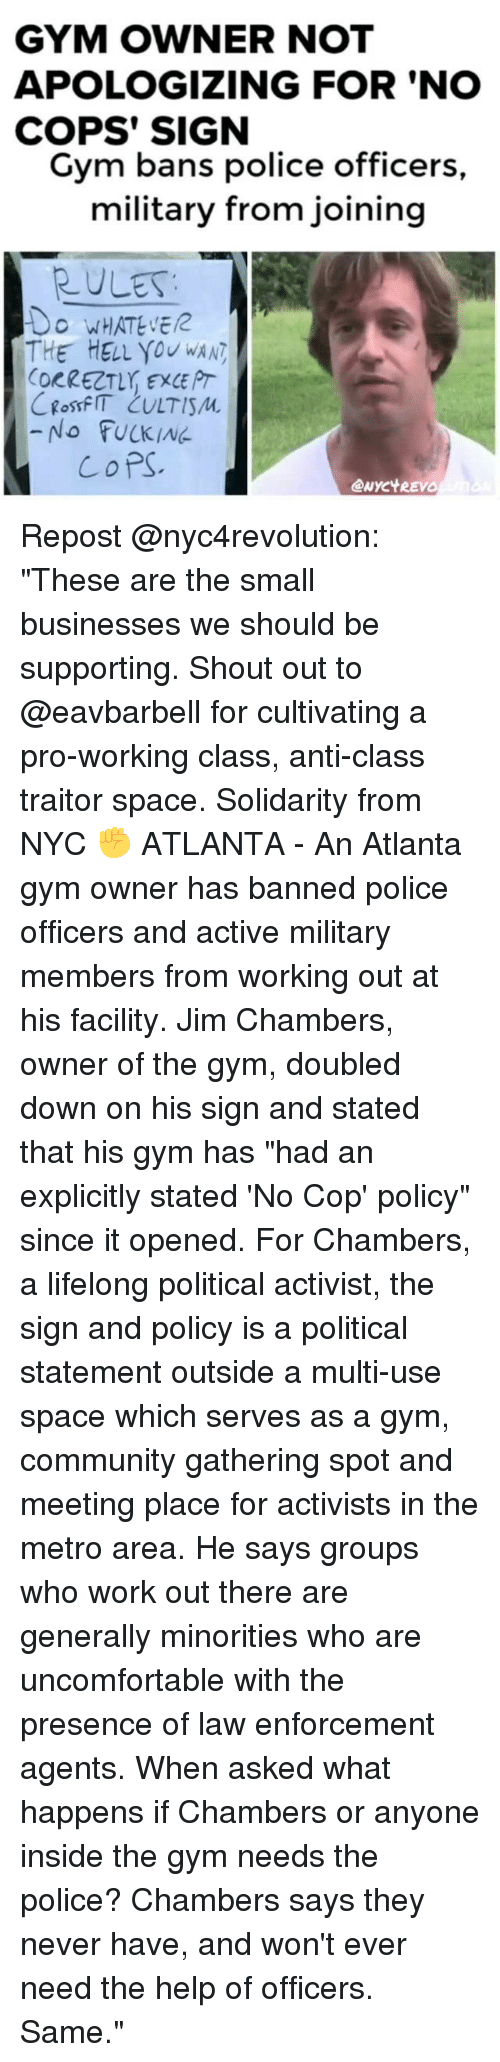 """Copping: GYM OWNER NOT  APOLOGIZING FOR 'NO  COPS' SIGN  Gym bans police officers  military from joining  RULES  O WHATEVE  THE HELL you wAN  ORRECT, EXCE PT  -No FUCKING  CoPS  eNYC't REVO Repost @nyc4revolution: """"These are the small businesses we should be supporting. Shout out to @eavbarbell for cultivating a pro-working class, anti-class traitor space. Solidarity from NYC ✊ ATLANTA - An Atlanta gym owner has banned police officers and active military members from working out at his facility. Jim Chambers, owner of the gym, doubled down on his sign and stated that his gym has """"had an explicitly stated 'No Cop' policy"""" since it opened. For Chambers, a lifelong political activist, the sign and policy is a political statement outside a multi-use space which serves as a gym, community gathering spot and meeting place for activists in the metro area. He says groups who work out there are generally minorities who are uncomfortable with the presence of law enforcement agents. When asked what happens if Chambers or anyone inside the gym needs the police? Chambers says they never have, and won't ever need the help of officers. Same."""""""